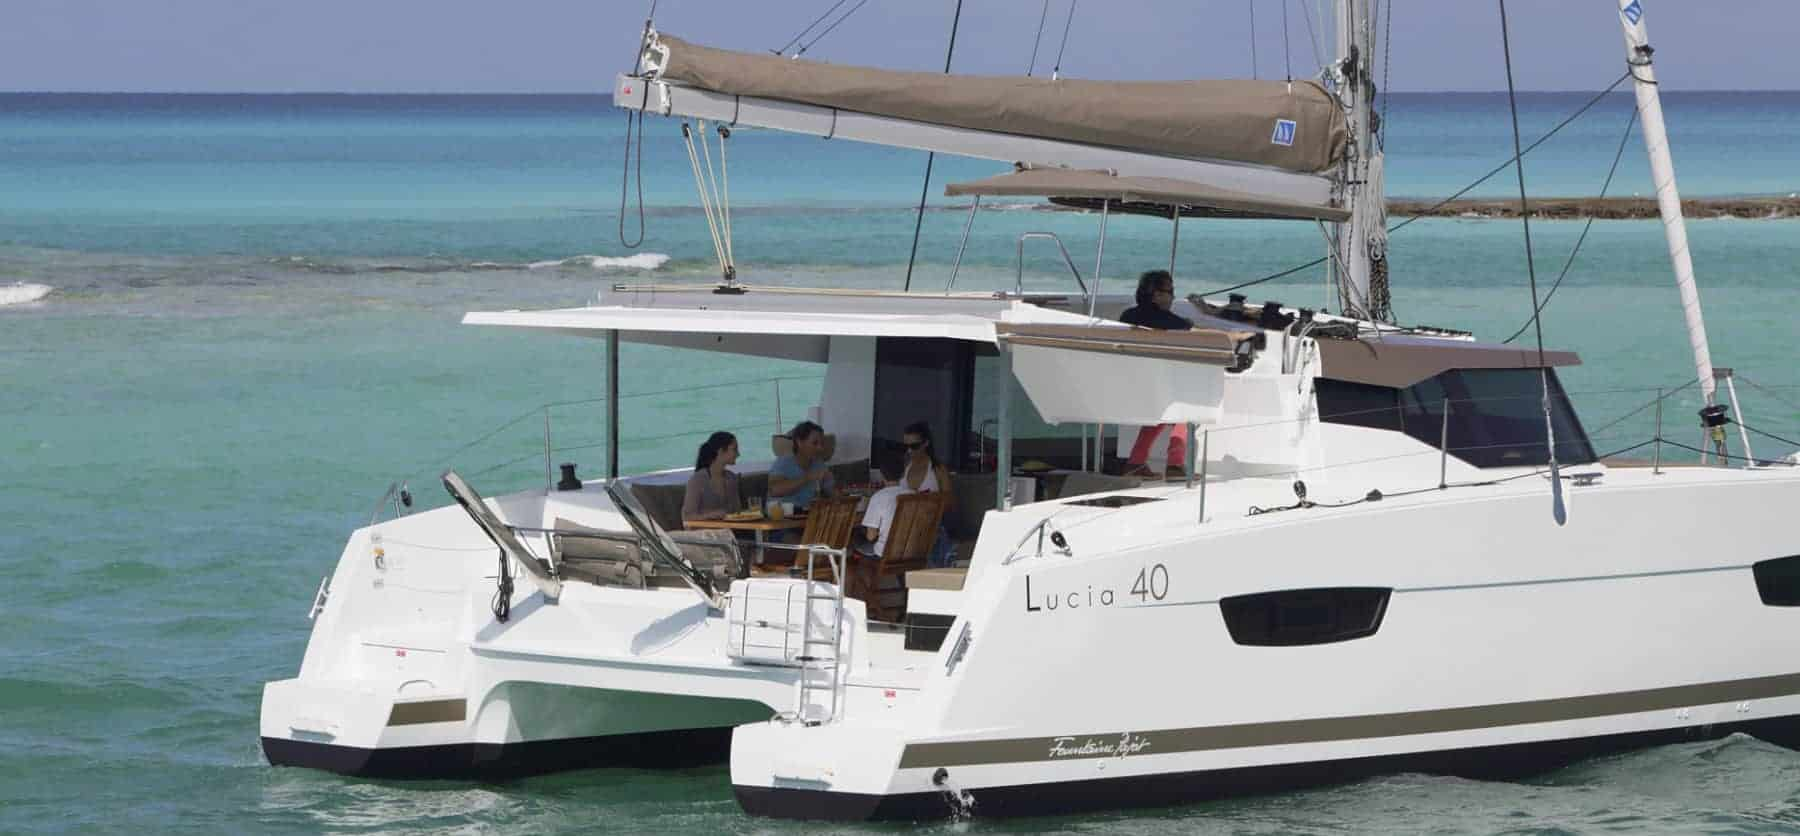 People having dinner on deck of the Fountaine Pajot Lucia 40 while a man sits on the flybridge a sunny day